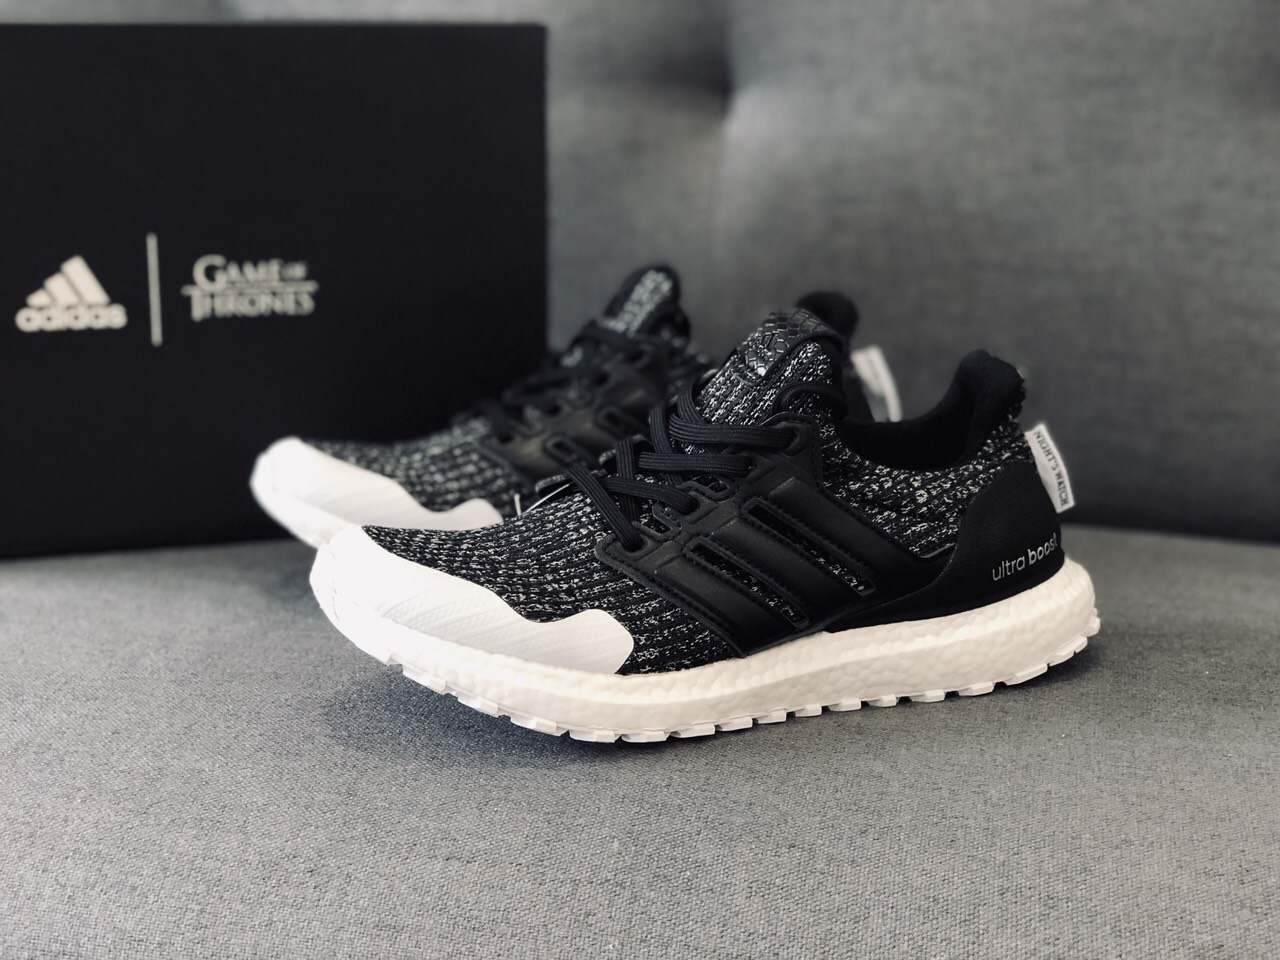 Giày Ultraboost x game of throne night's watch